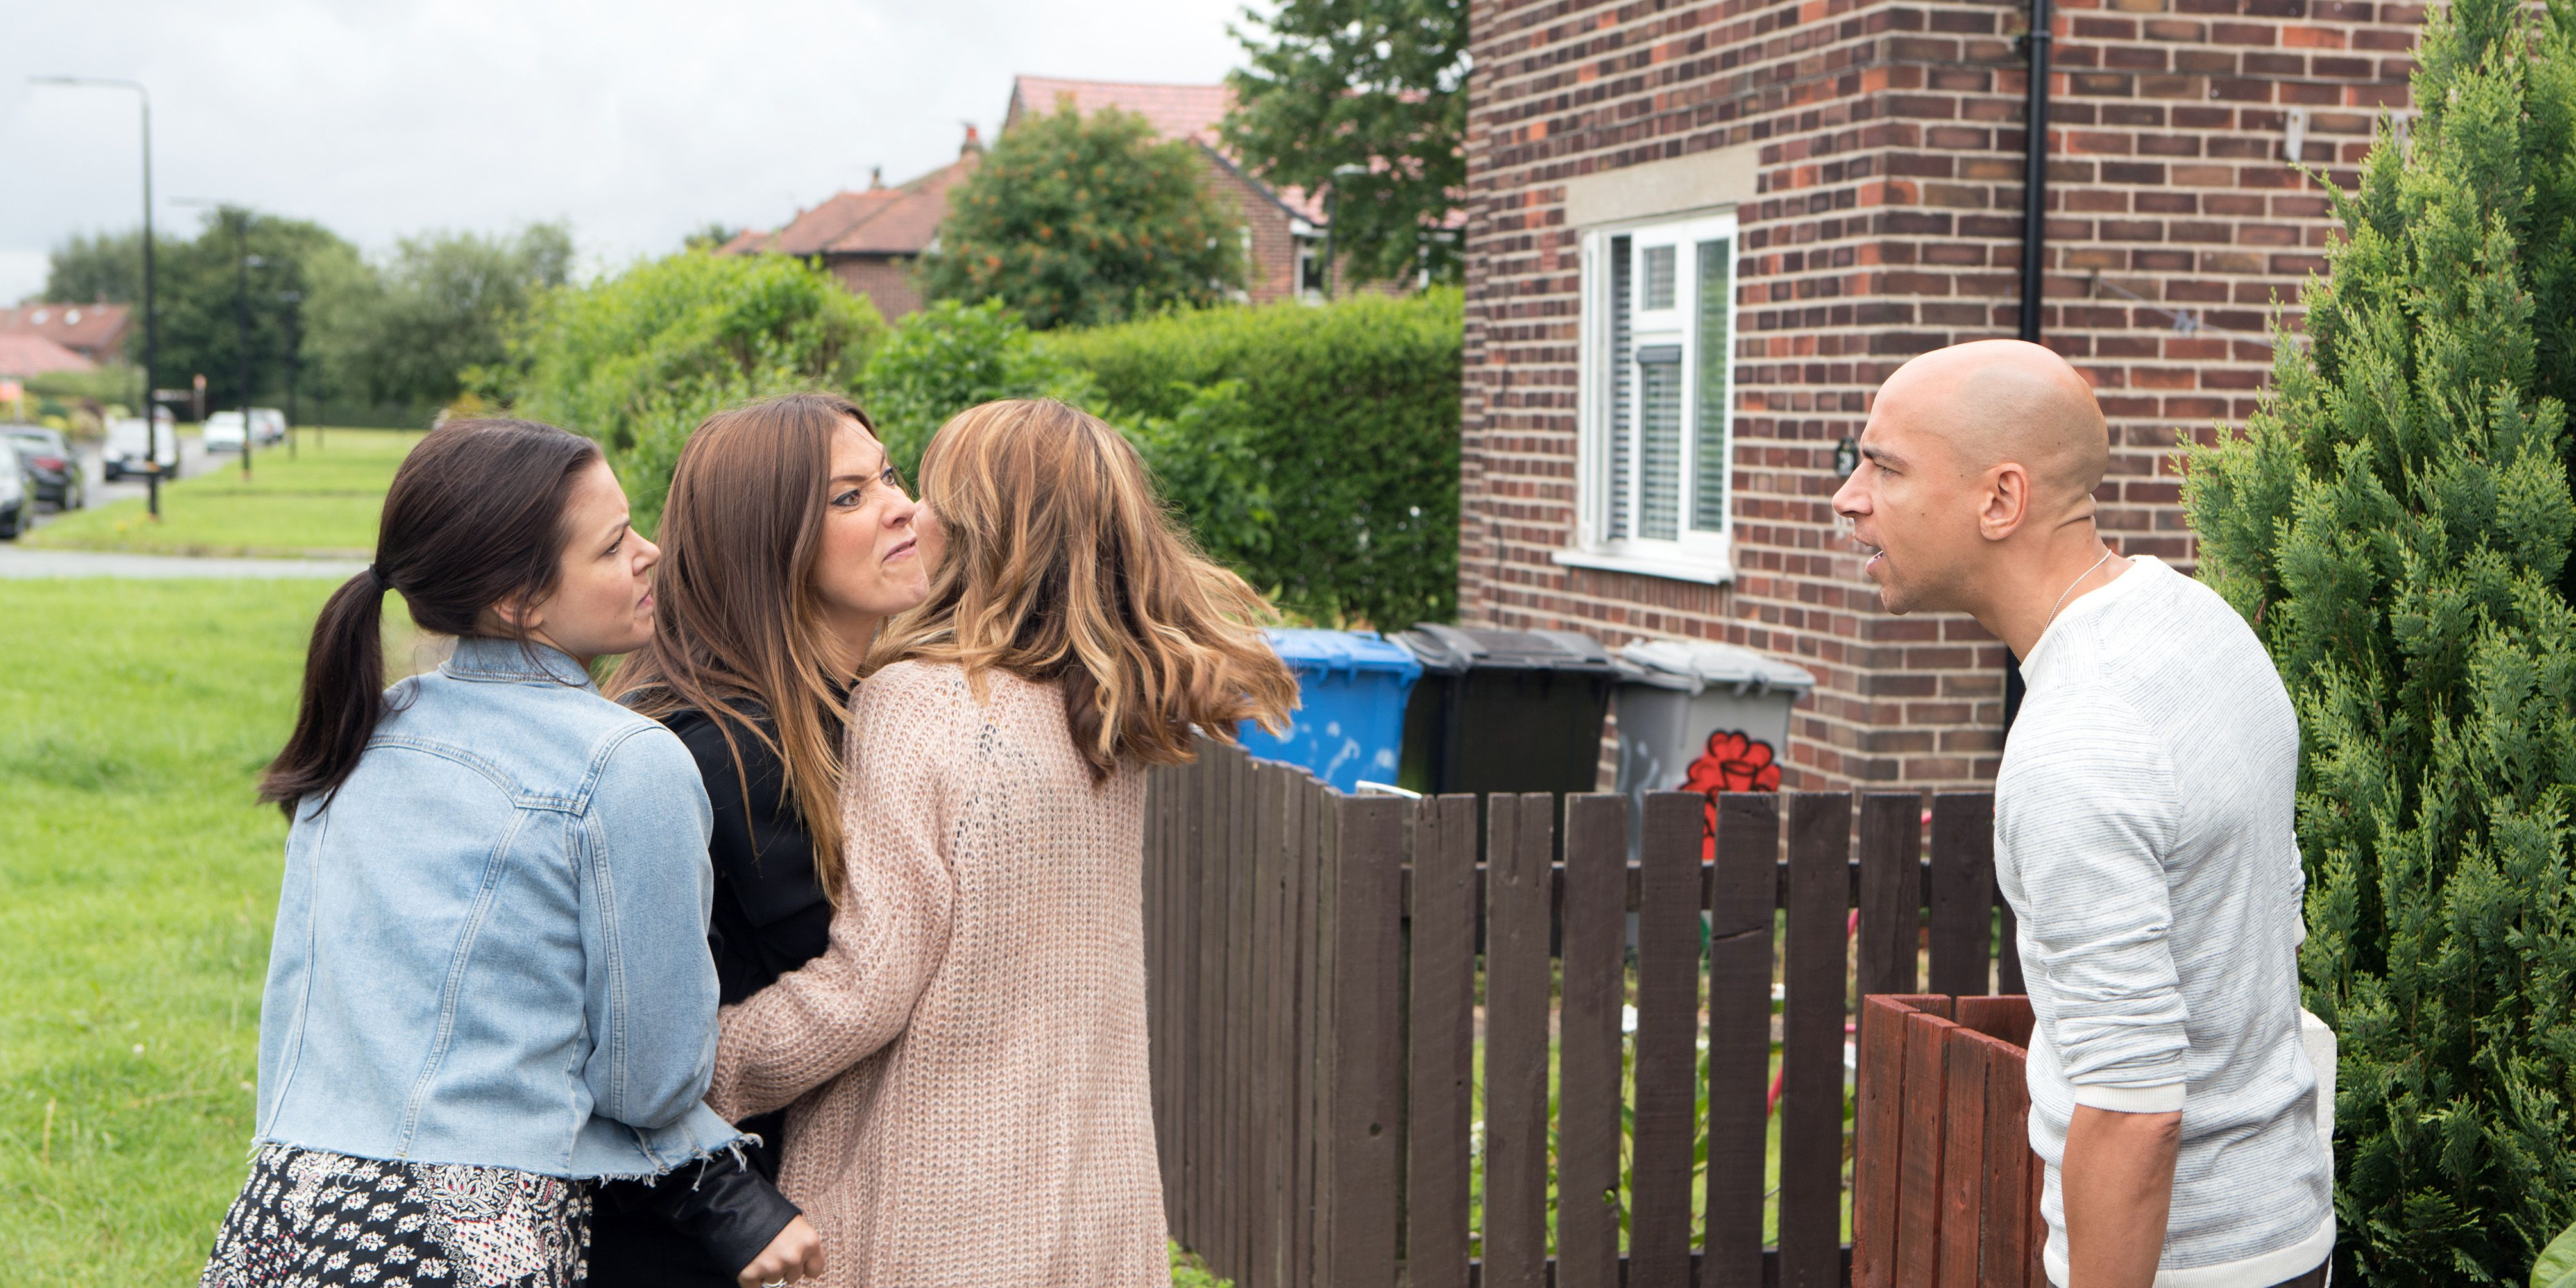 Michelle Connor confronts Rich Collis about the drugs in Coronation Street